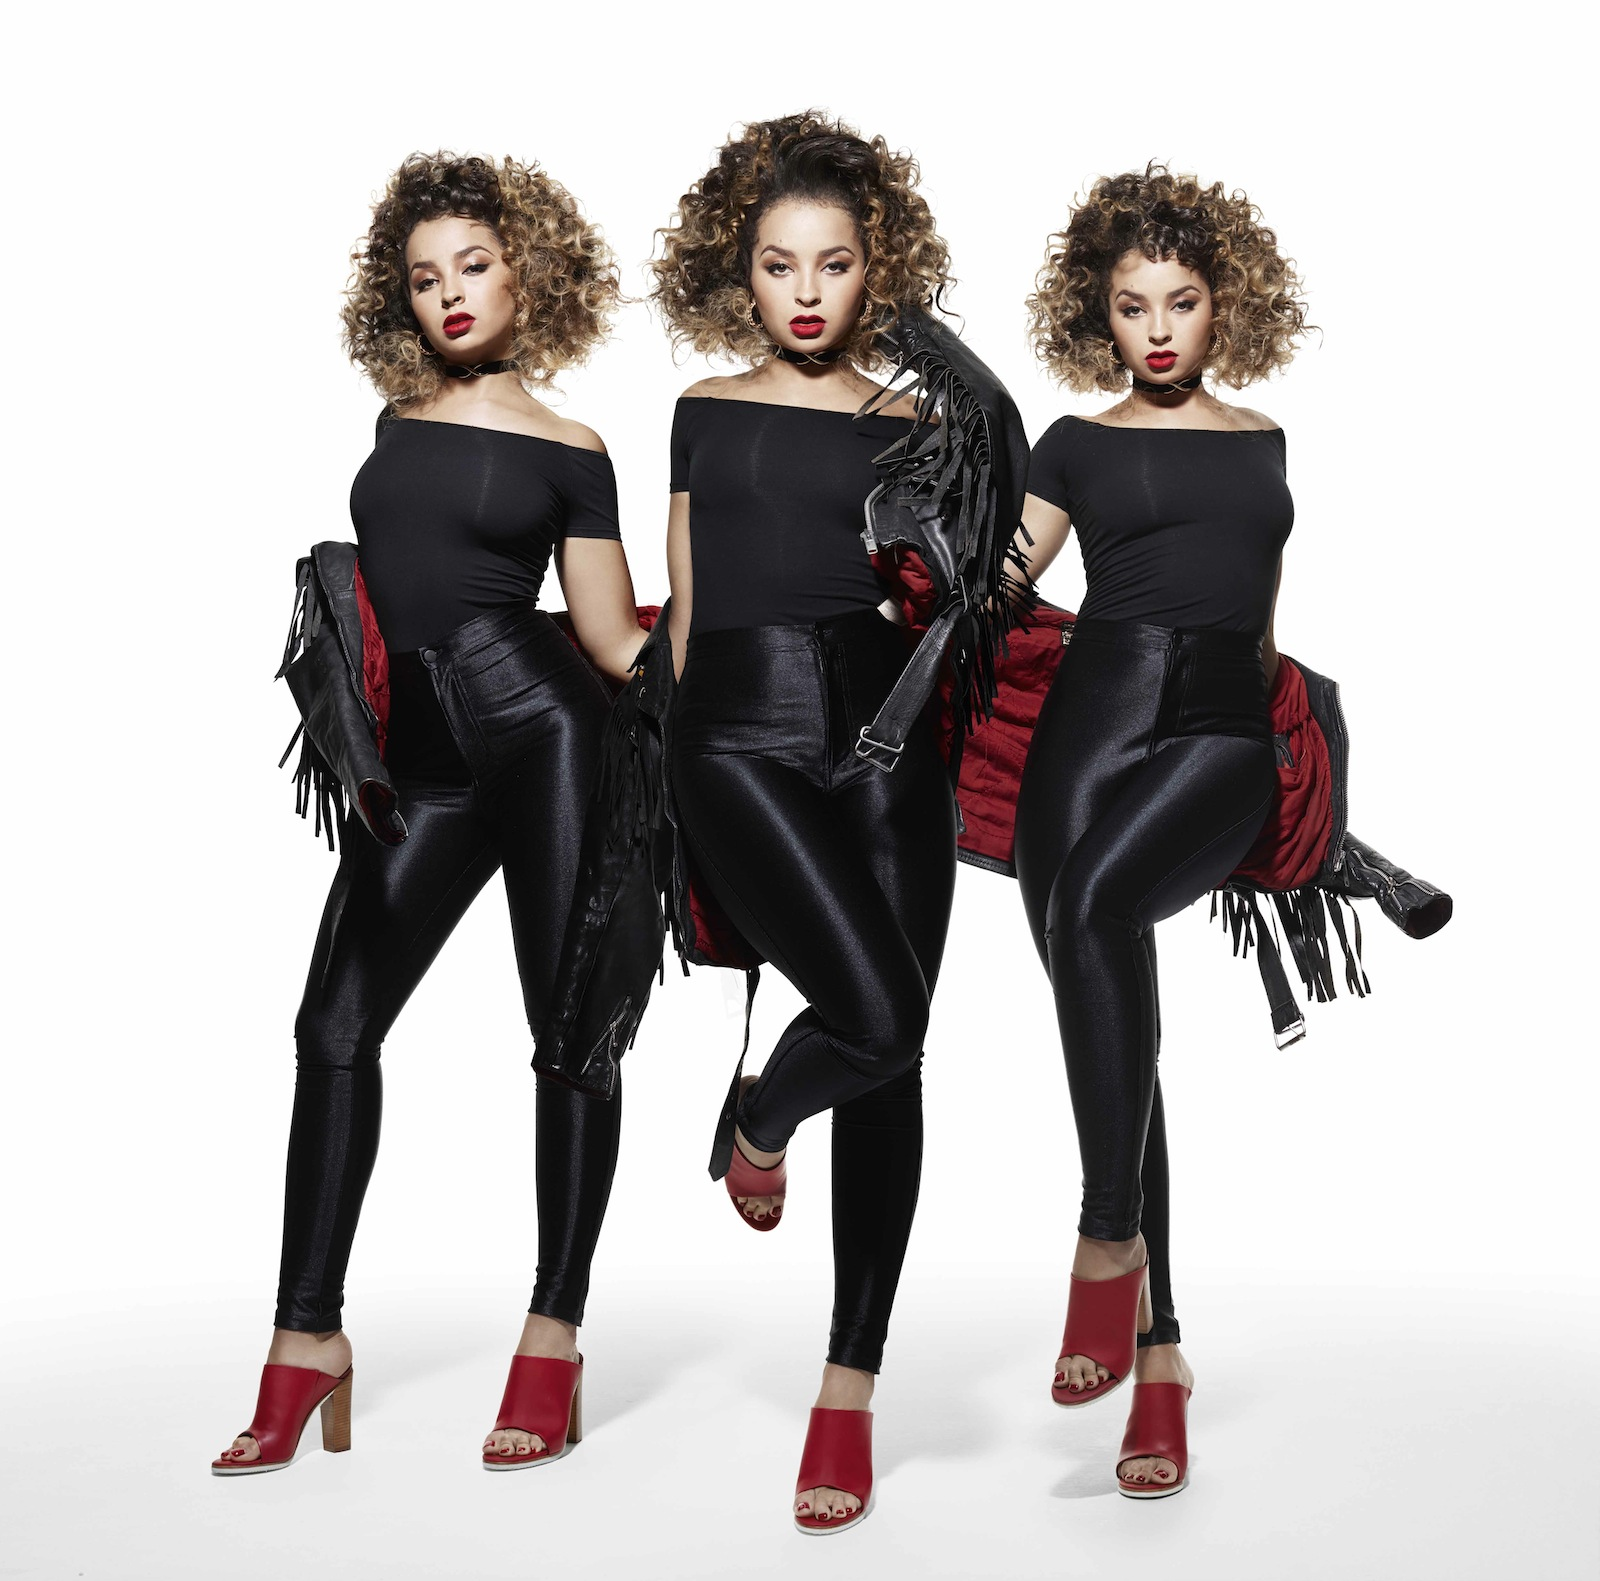 Ella Eyre partners with Sure, which contains motion activated technology, to channel iconic movie star Sandy as she recreates her favourite music scene from Grease. Ella will be hosting her first ever movement activated gig, where the more the audience moves, the more energetic her performance becomes.